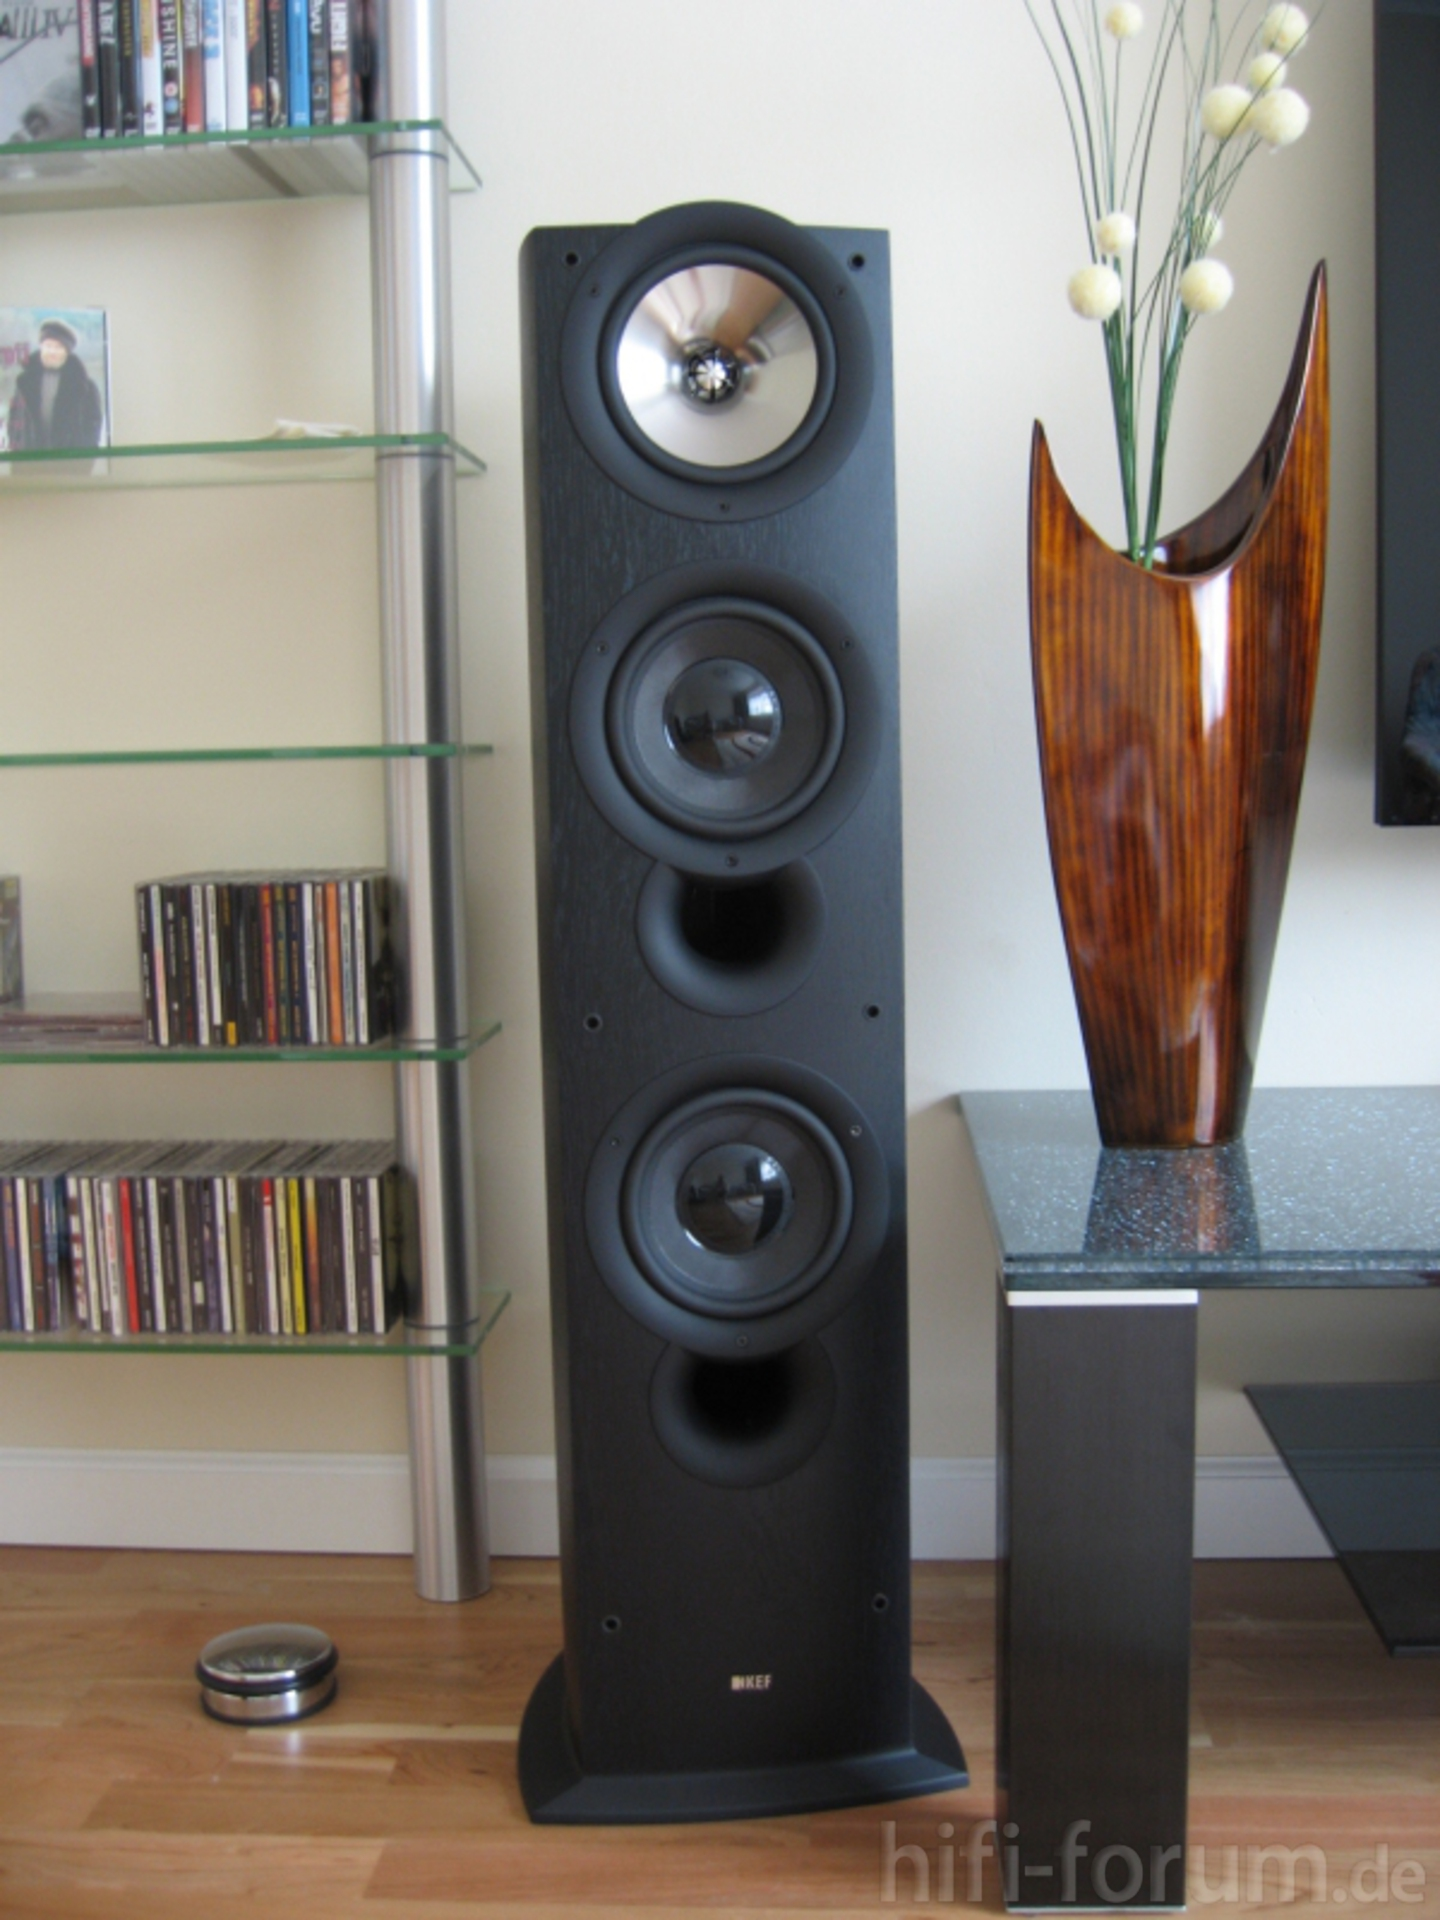 KEF iQ90 | heimkino, iq90, kef, surround